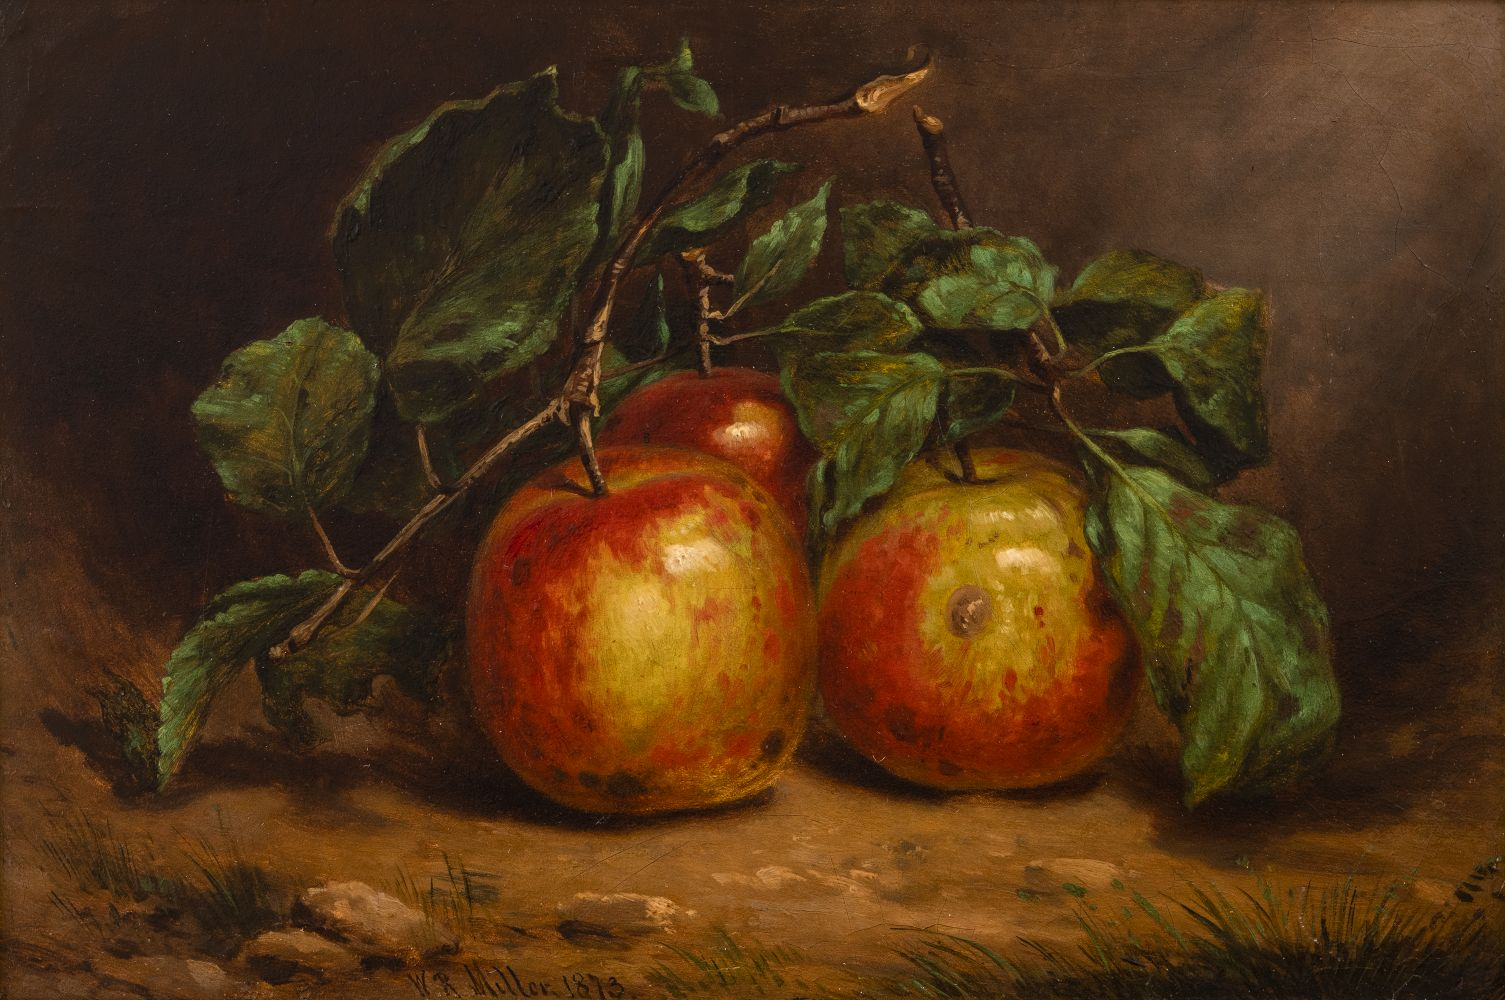 William Rickarby Miller (1816–1888), Study of Apples on a Bough, 1873, oil on board, 8 1/2 x 12 1/2 in. , signed and dated lower left: W. R. Miller 1873